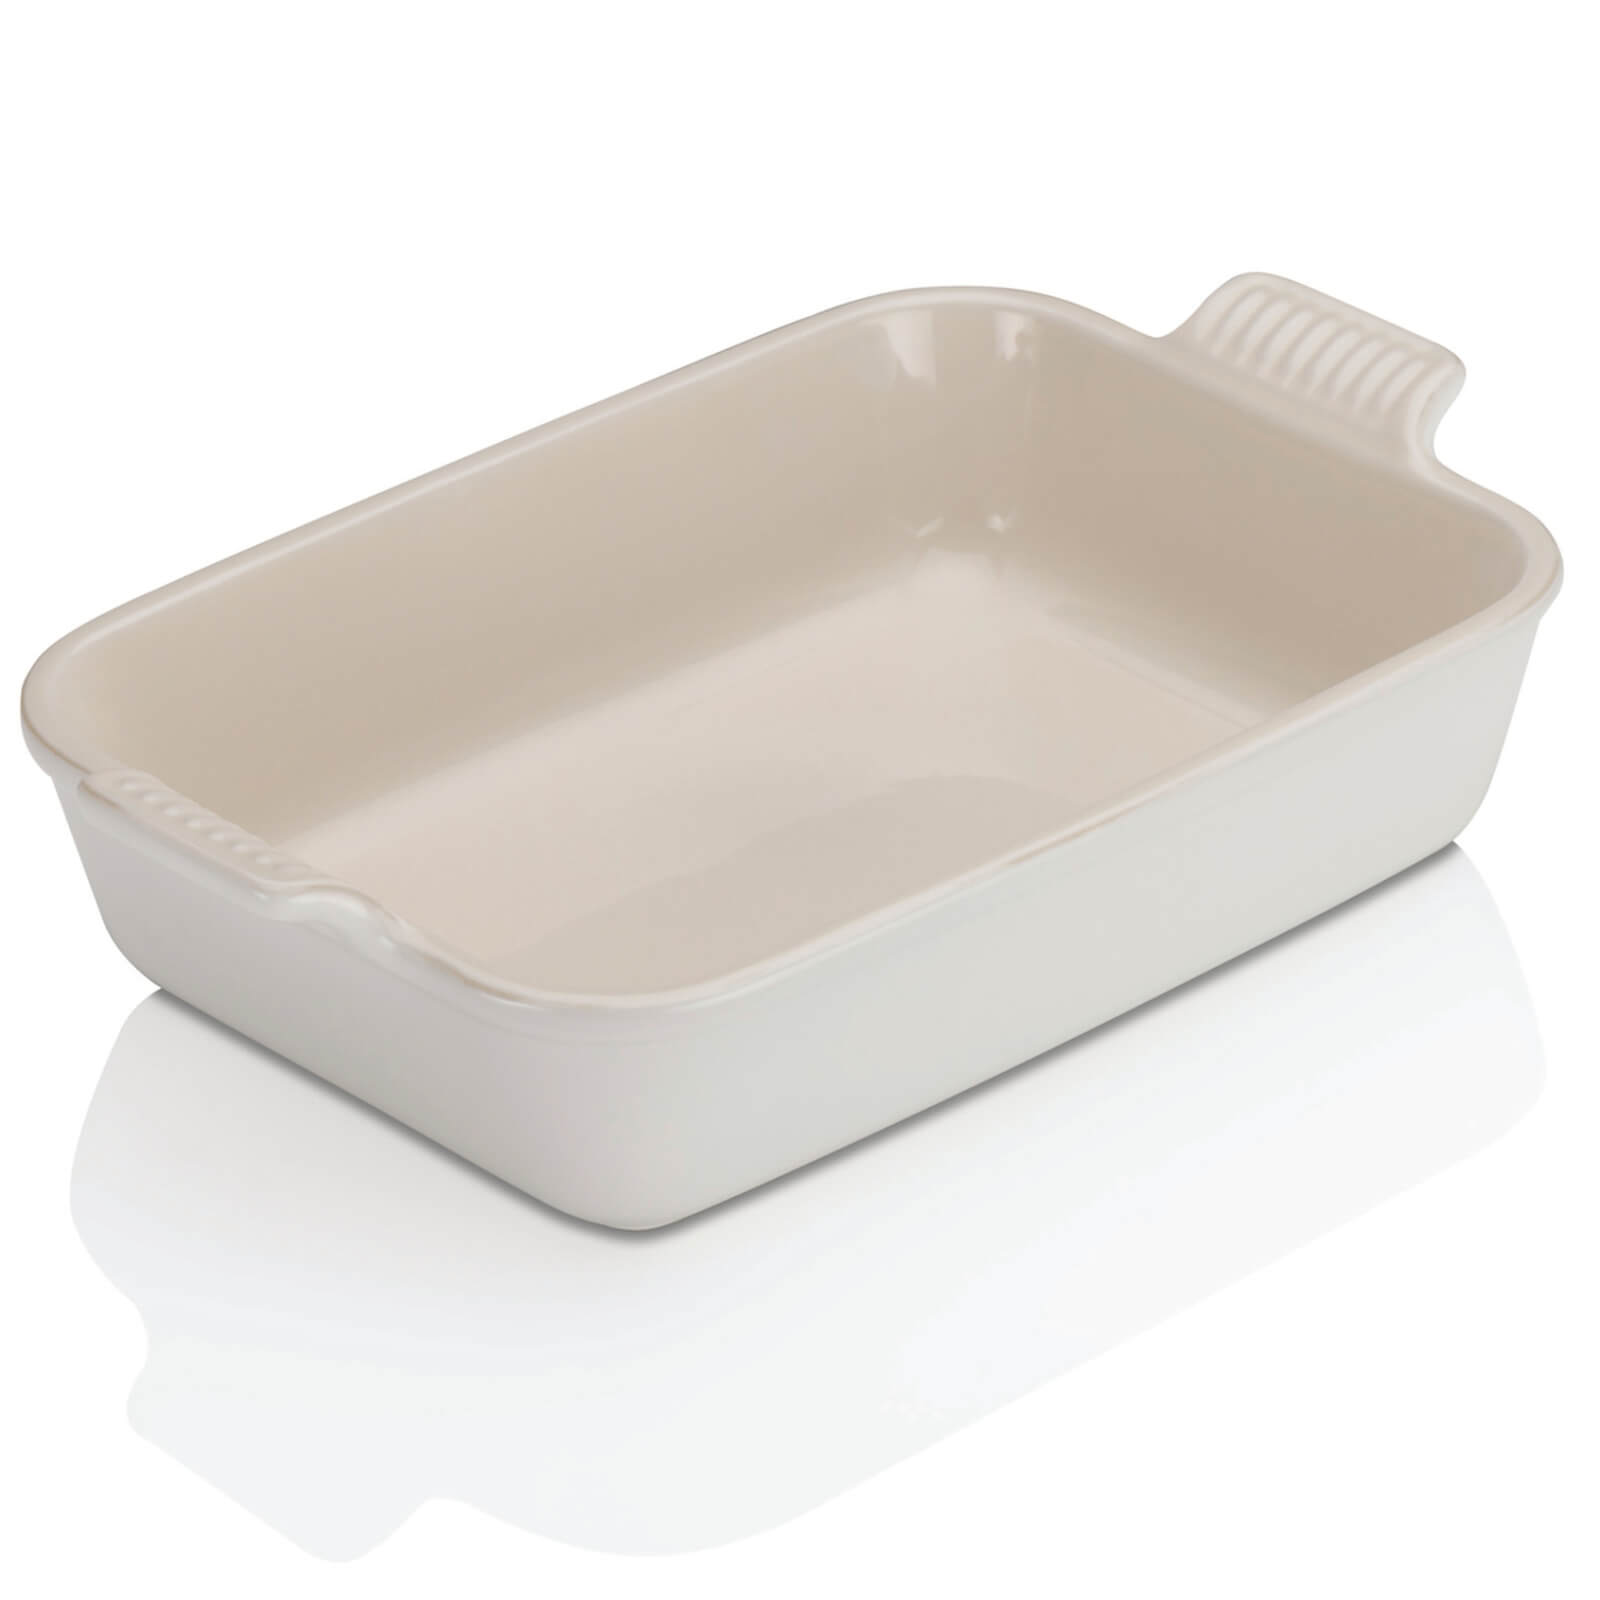 Le Creuset Stoneware Deep Rectangular Dish - 26cm - Cotton